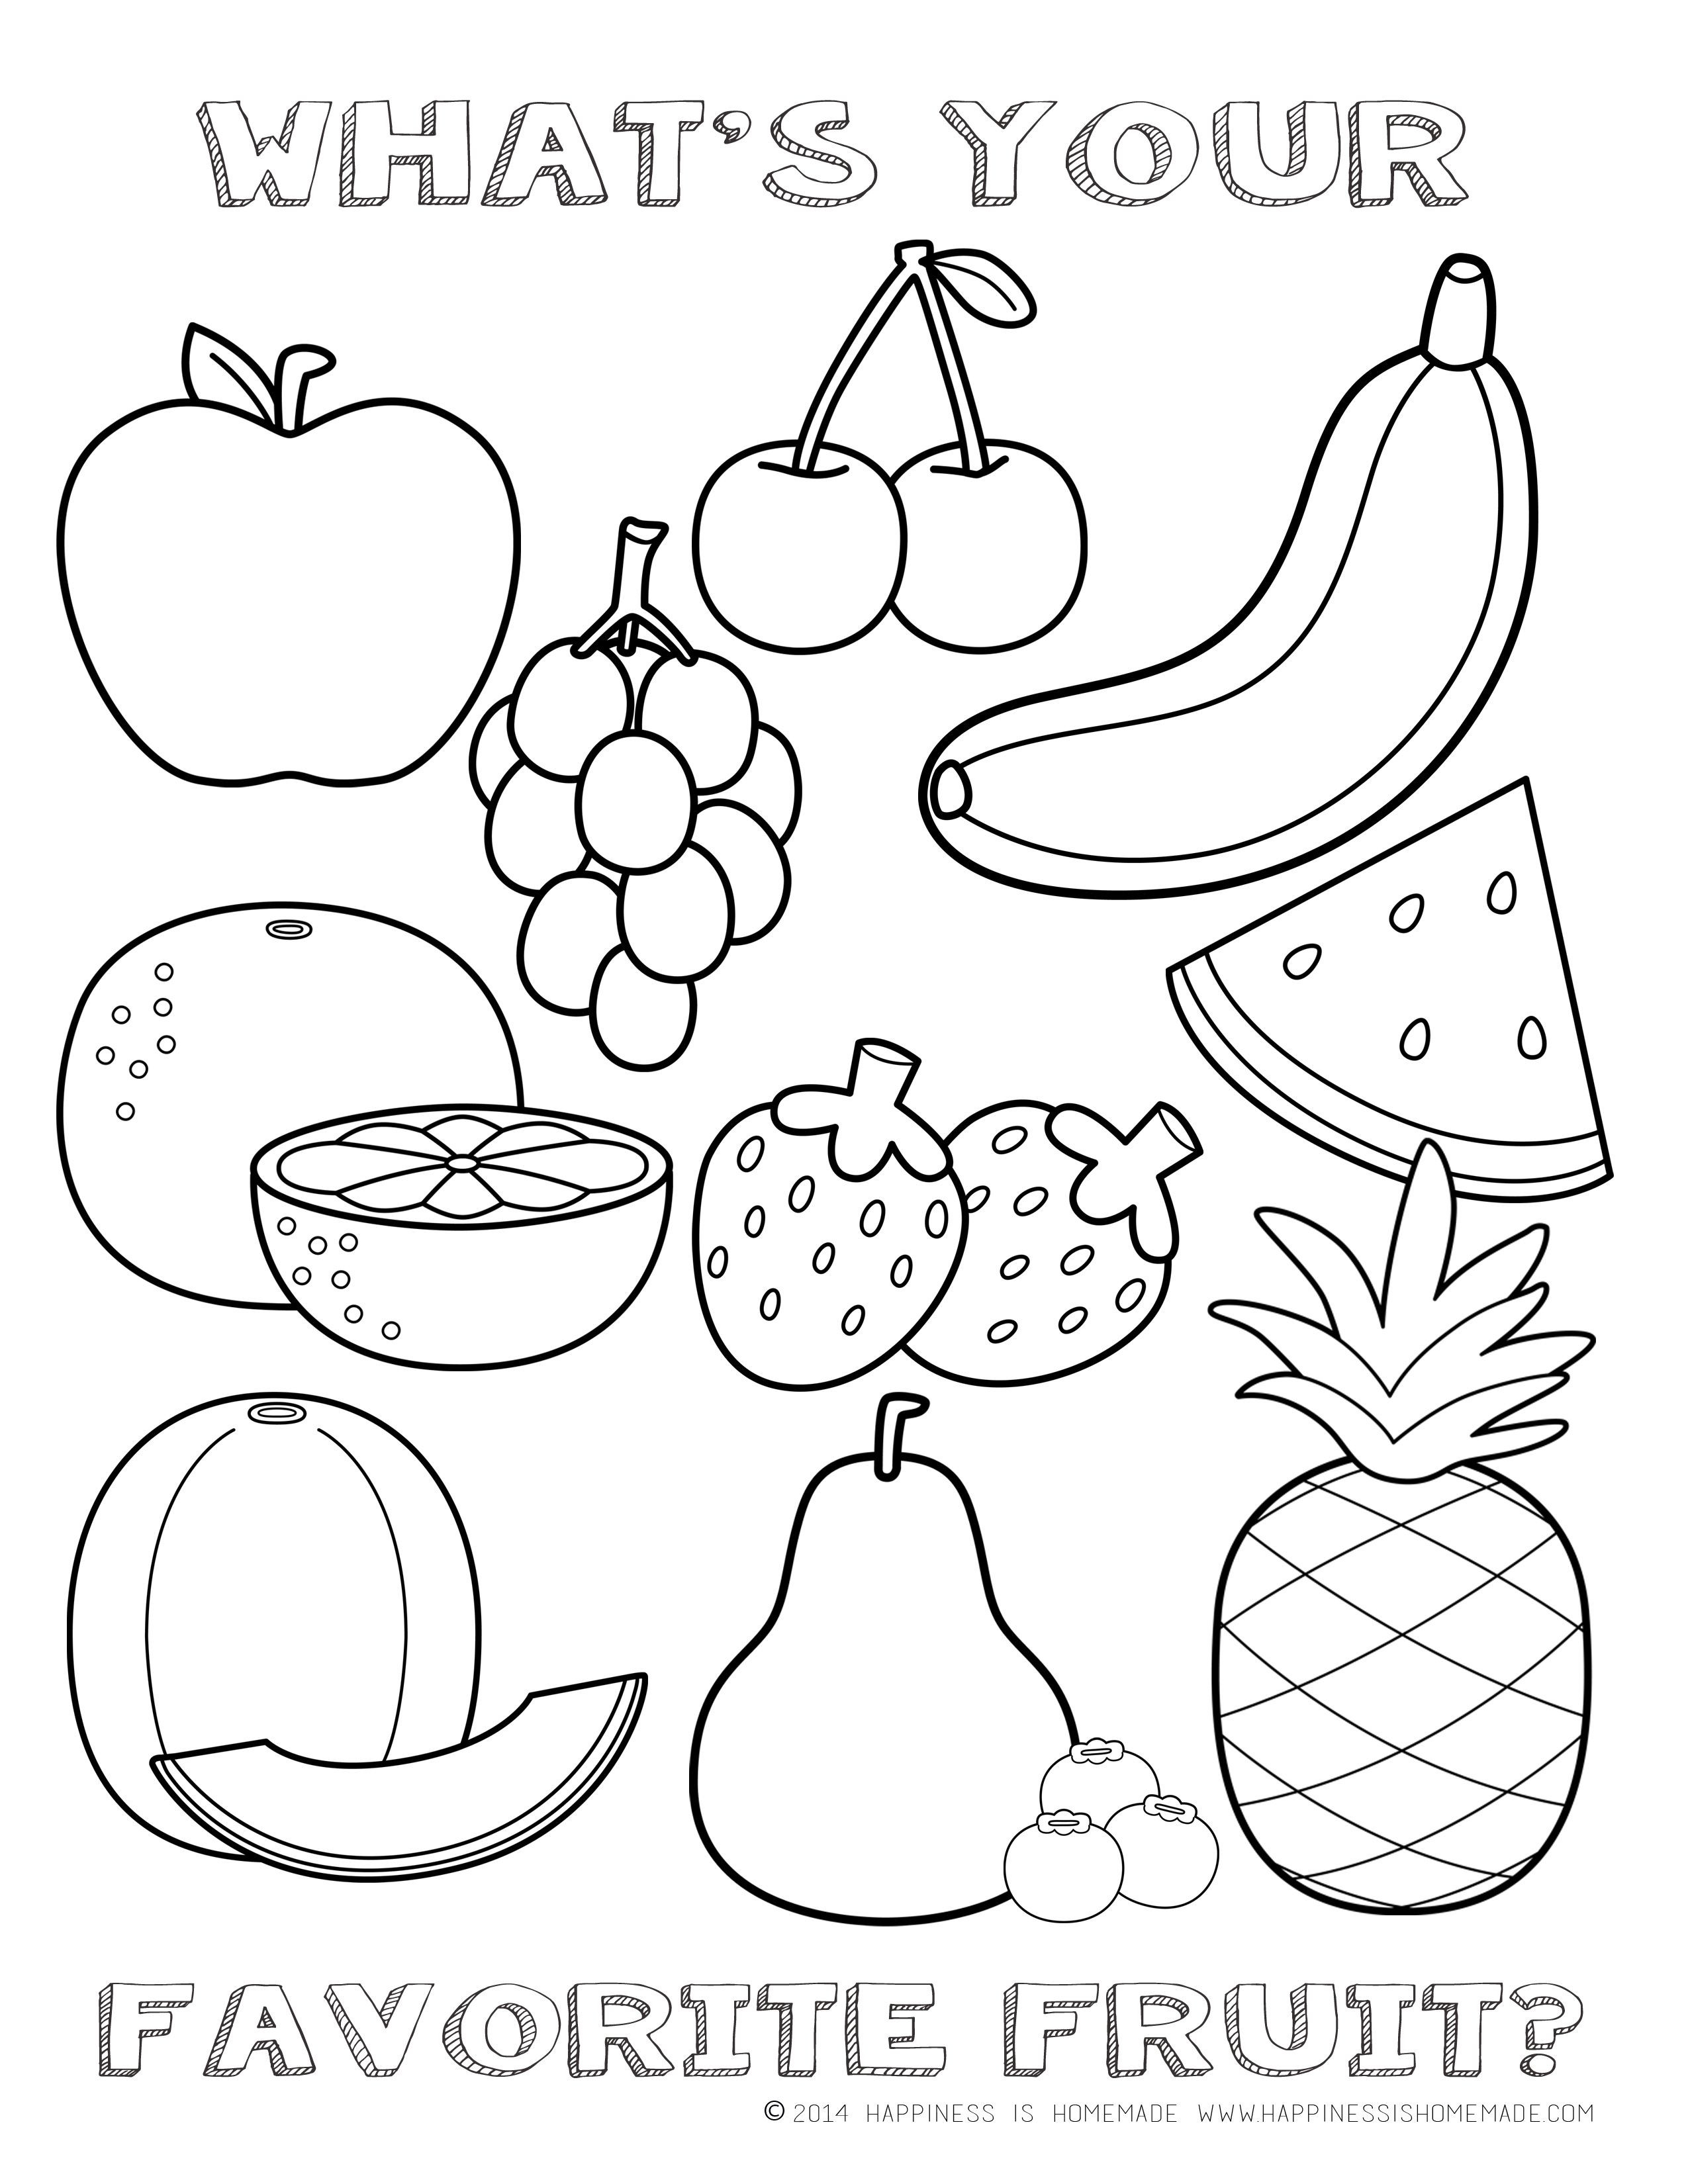 coloring fruits and vegetables images fruits and vegetables coloring pages for kids printable and fruits vegetables images coloring